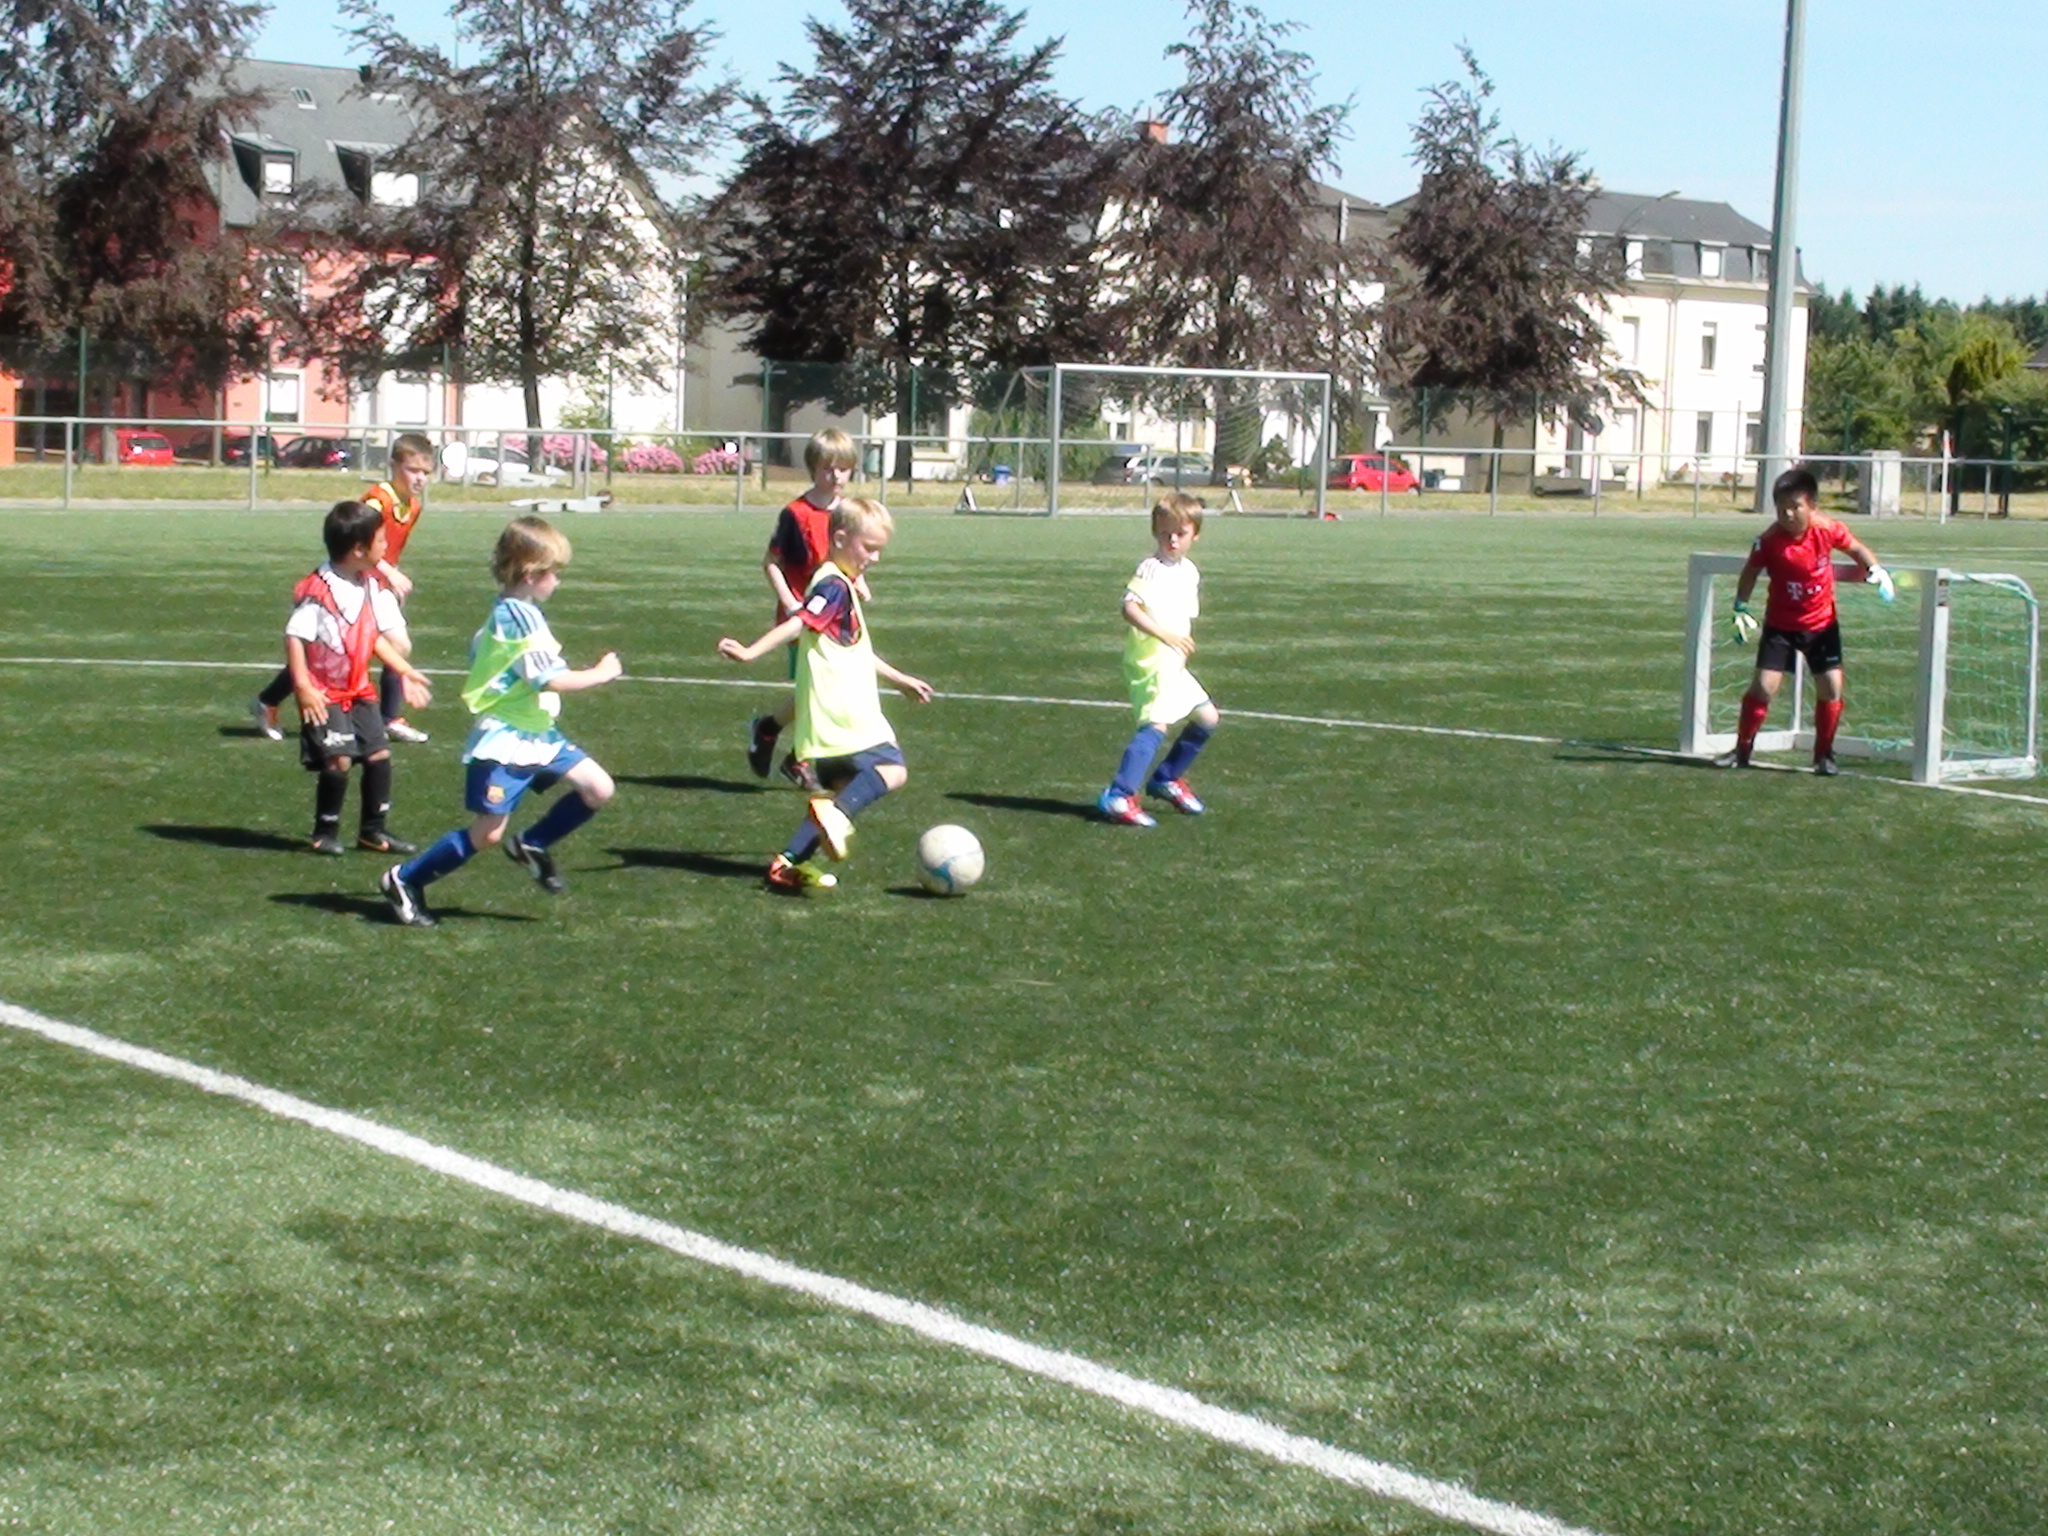 Summer Camp Football Klinik Academy Luxembourg